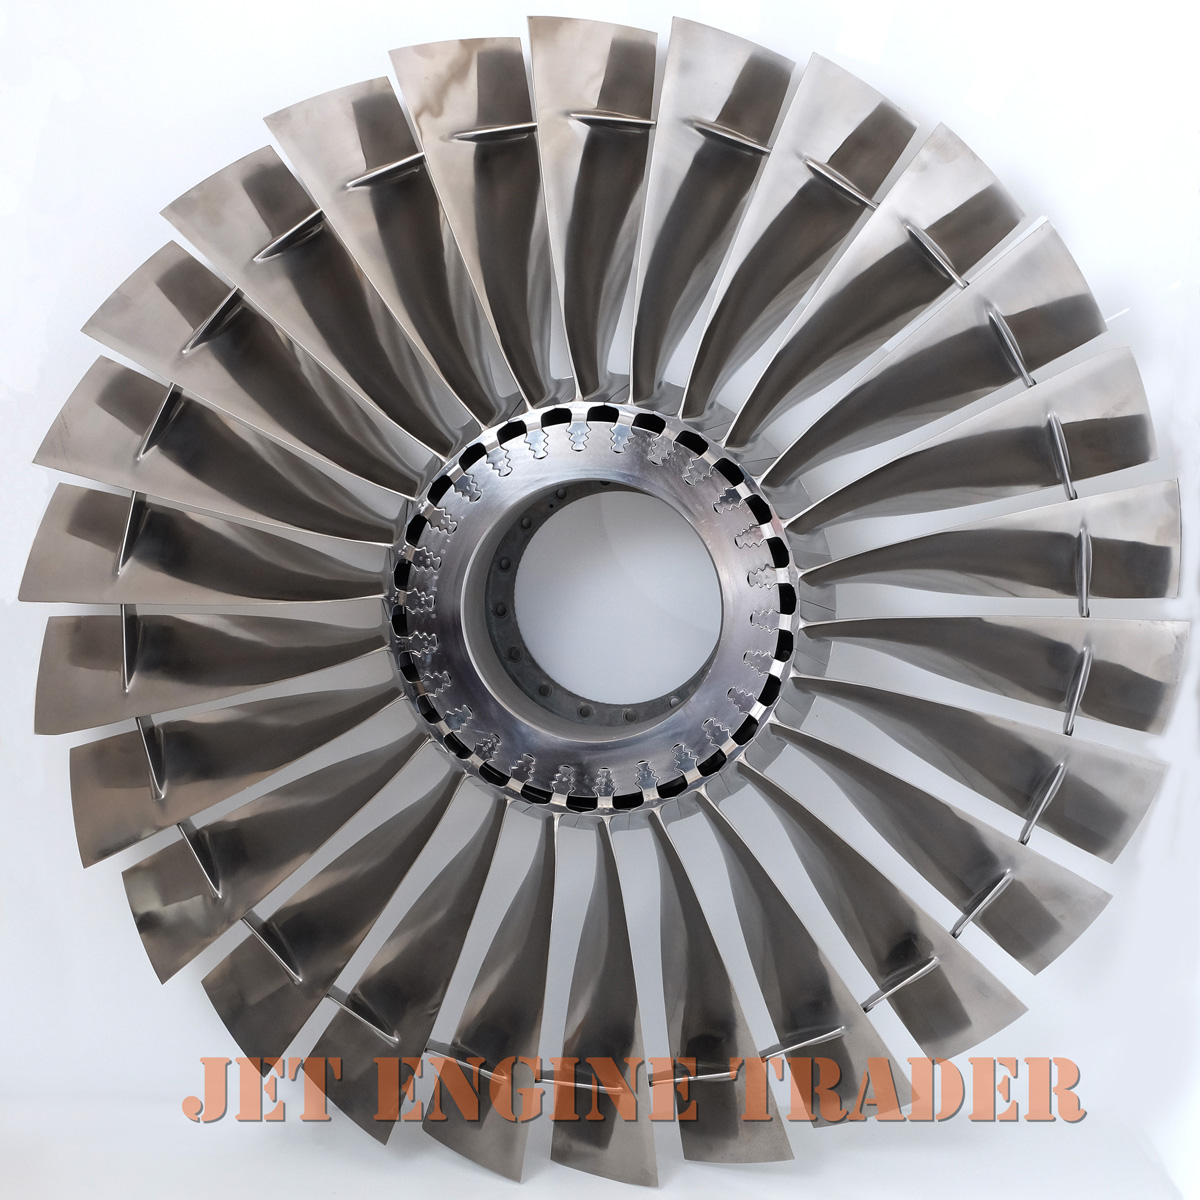 Rr Pegasus Lp Fans Archives Jet Engine Trader Jet